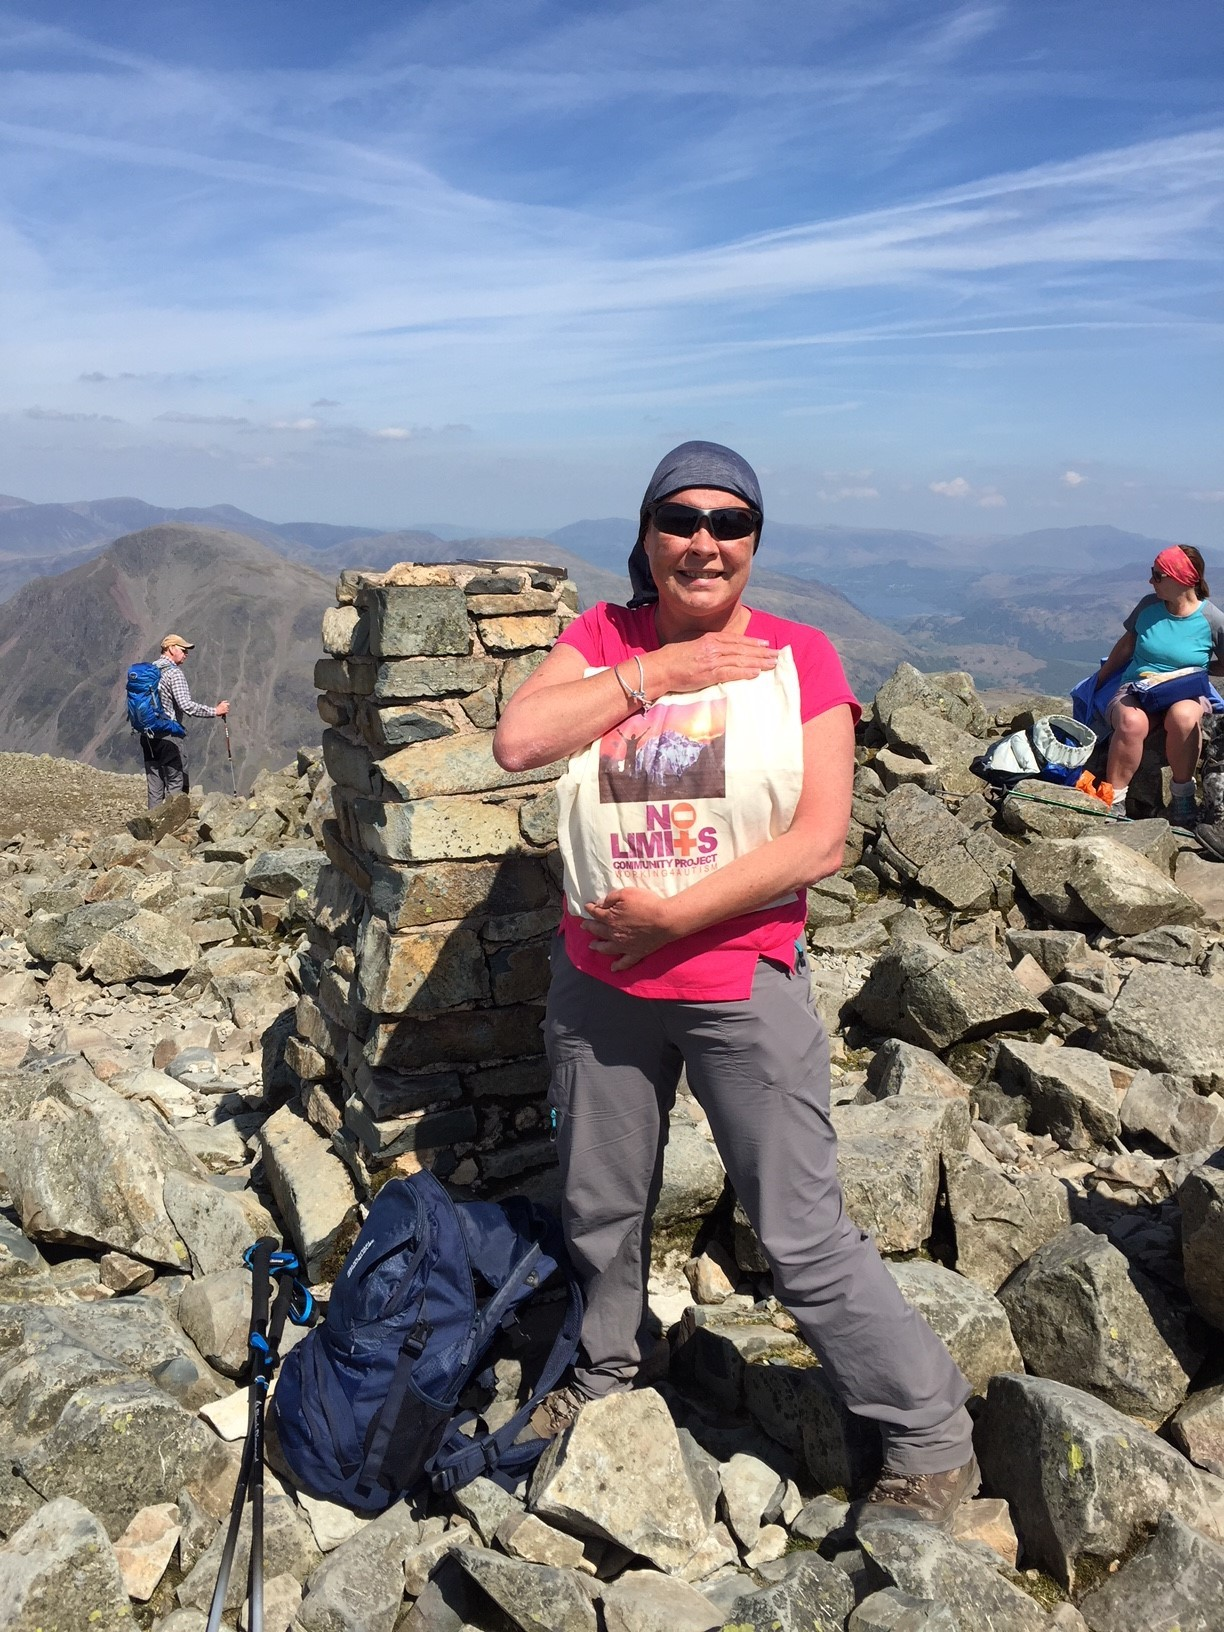 Debbie McDonnell celebrates conquering Scafell PIke.